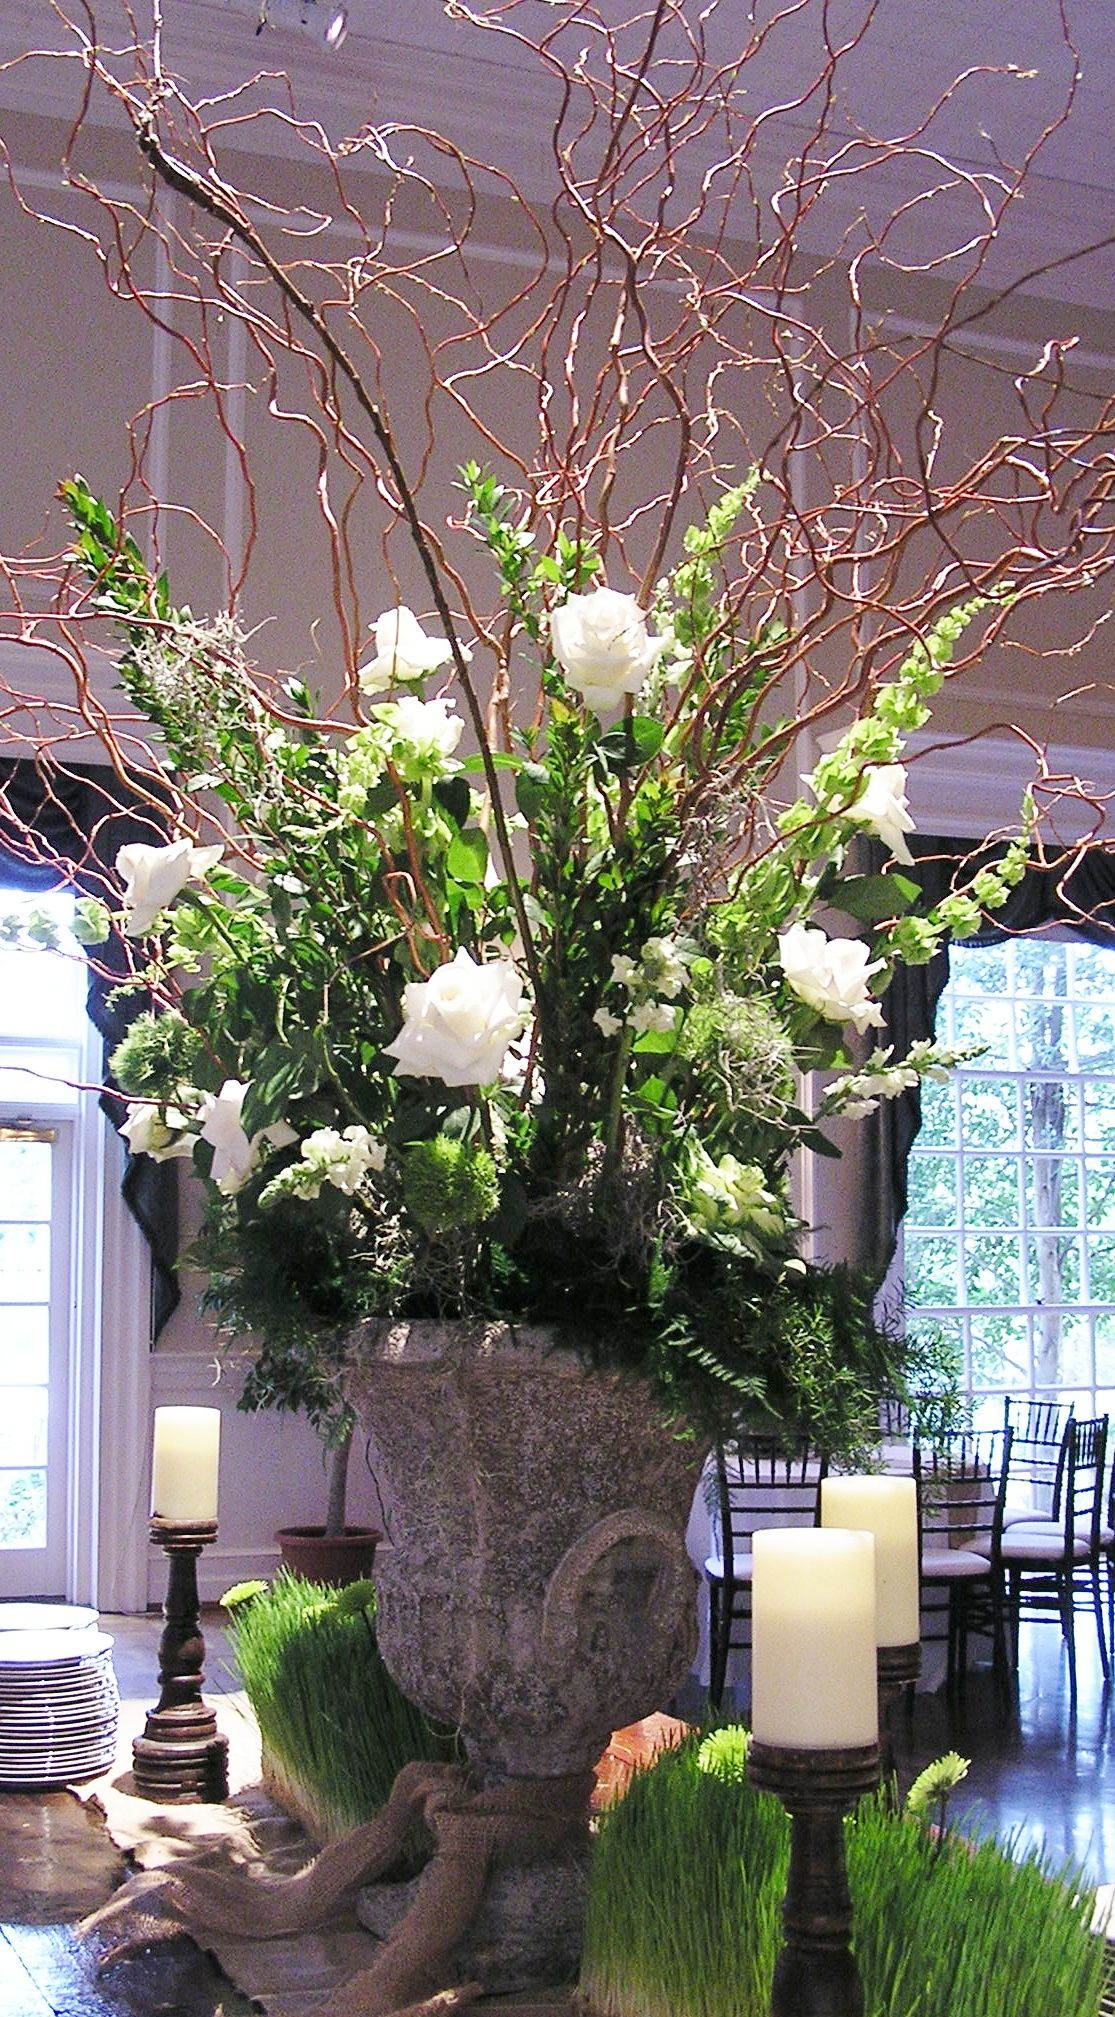 Uncategorized Unique Flower Arrangements For Weddings a green and white wedding large arrangement with curly willow bells of ireland roses unique flower